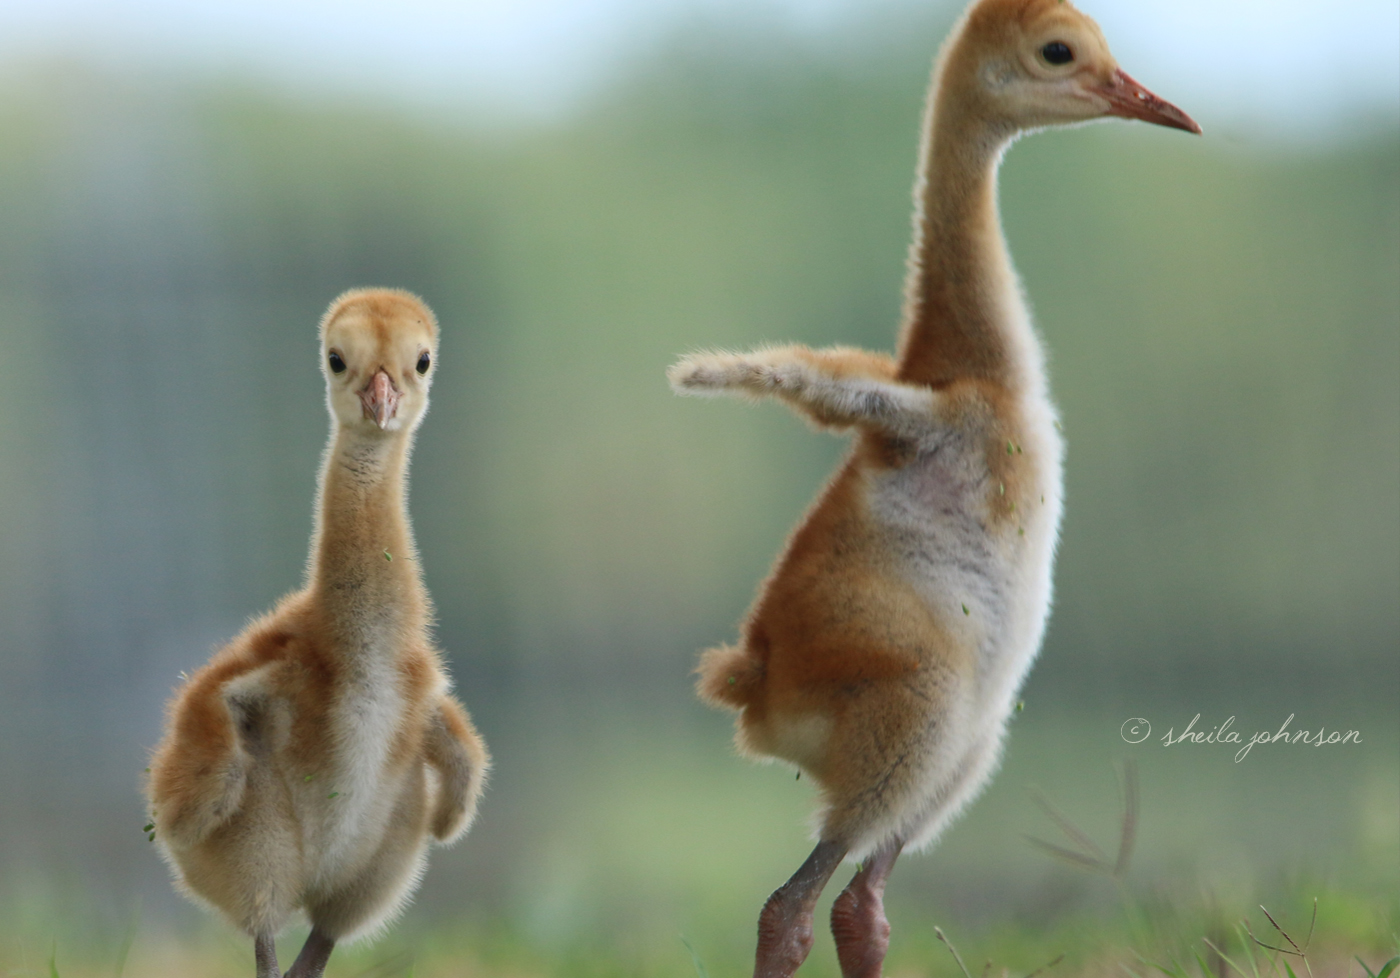 One Juvenile Sandhill Crane Seems To Wonder What This Thing Is Pointing At Him (Or Her) While His Sister (Or Brother) Tries Out Little Wings. Their Wingspans Will Eventually Grow To About 5.5 To 7.5 Feet.